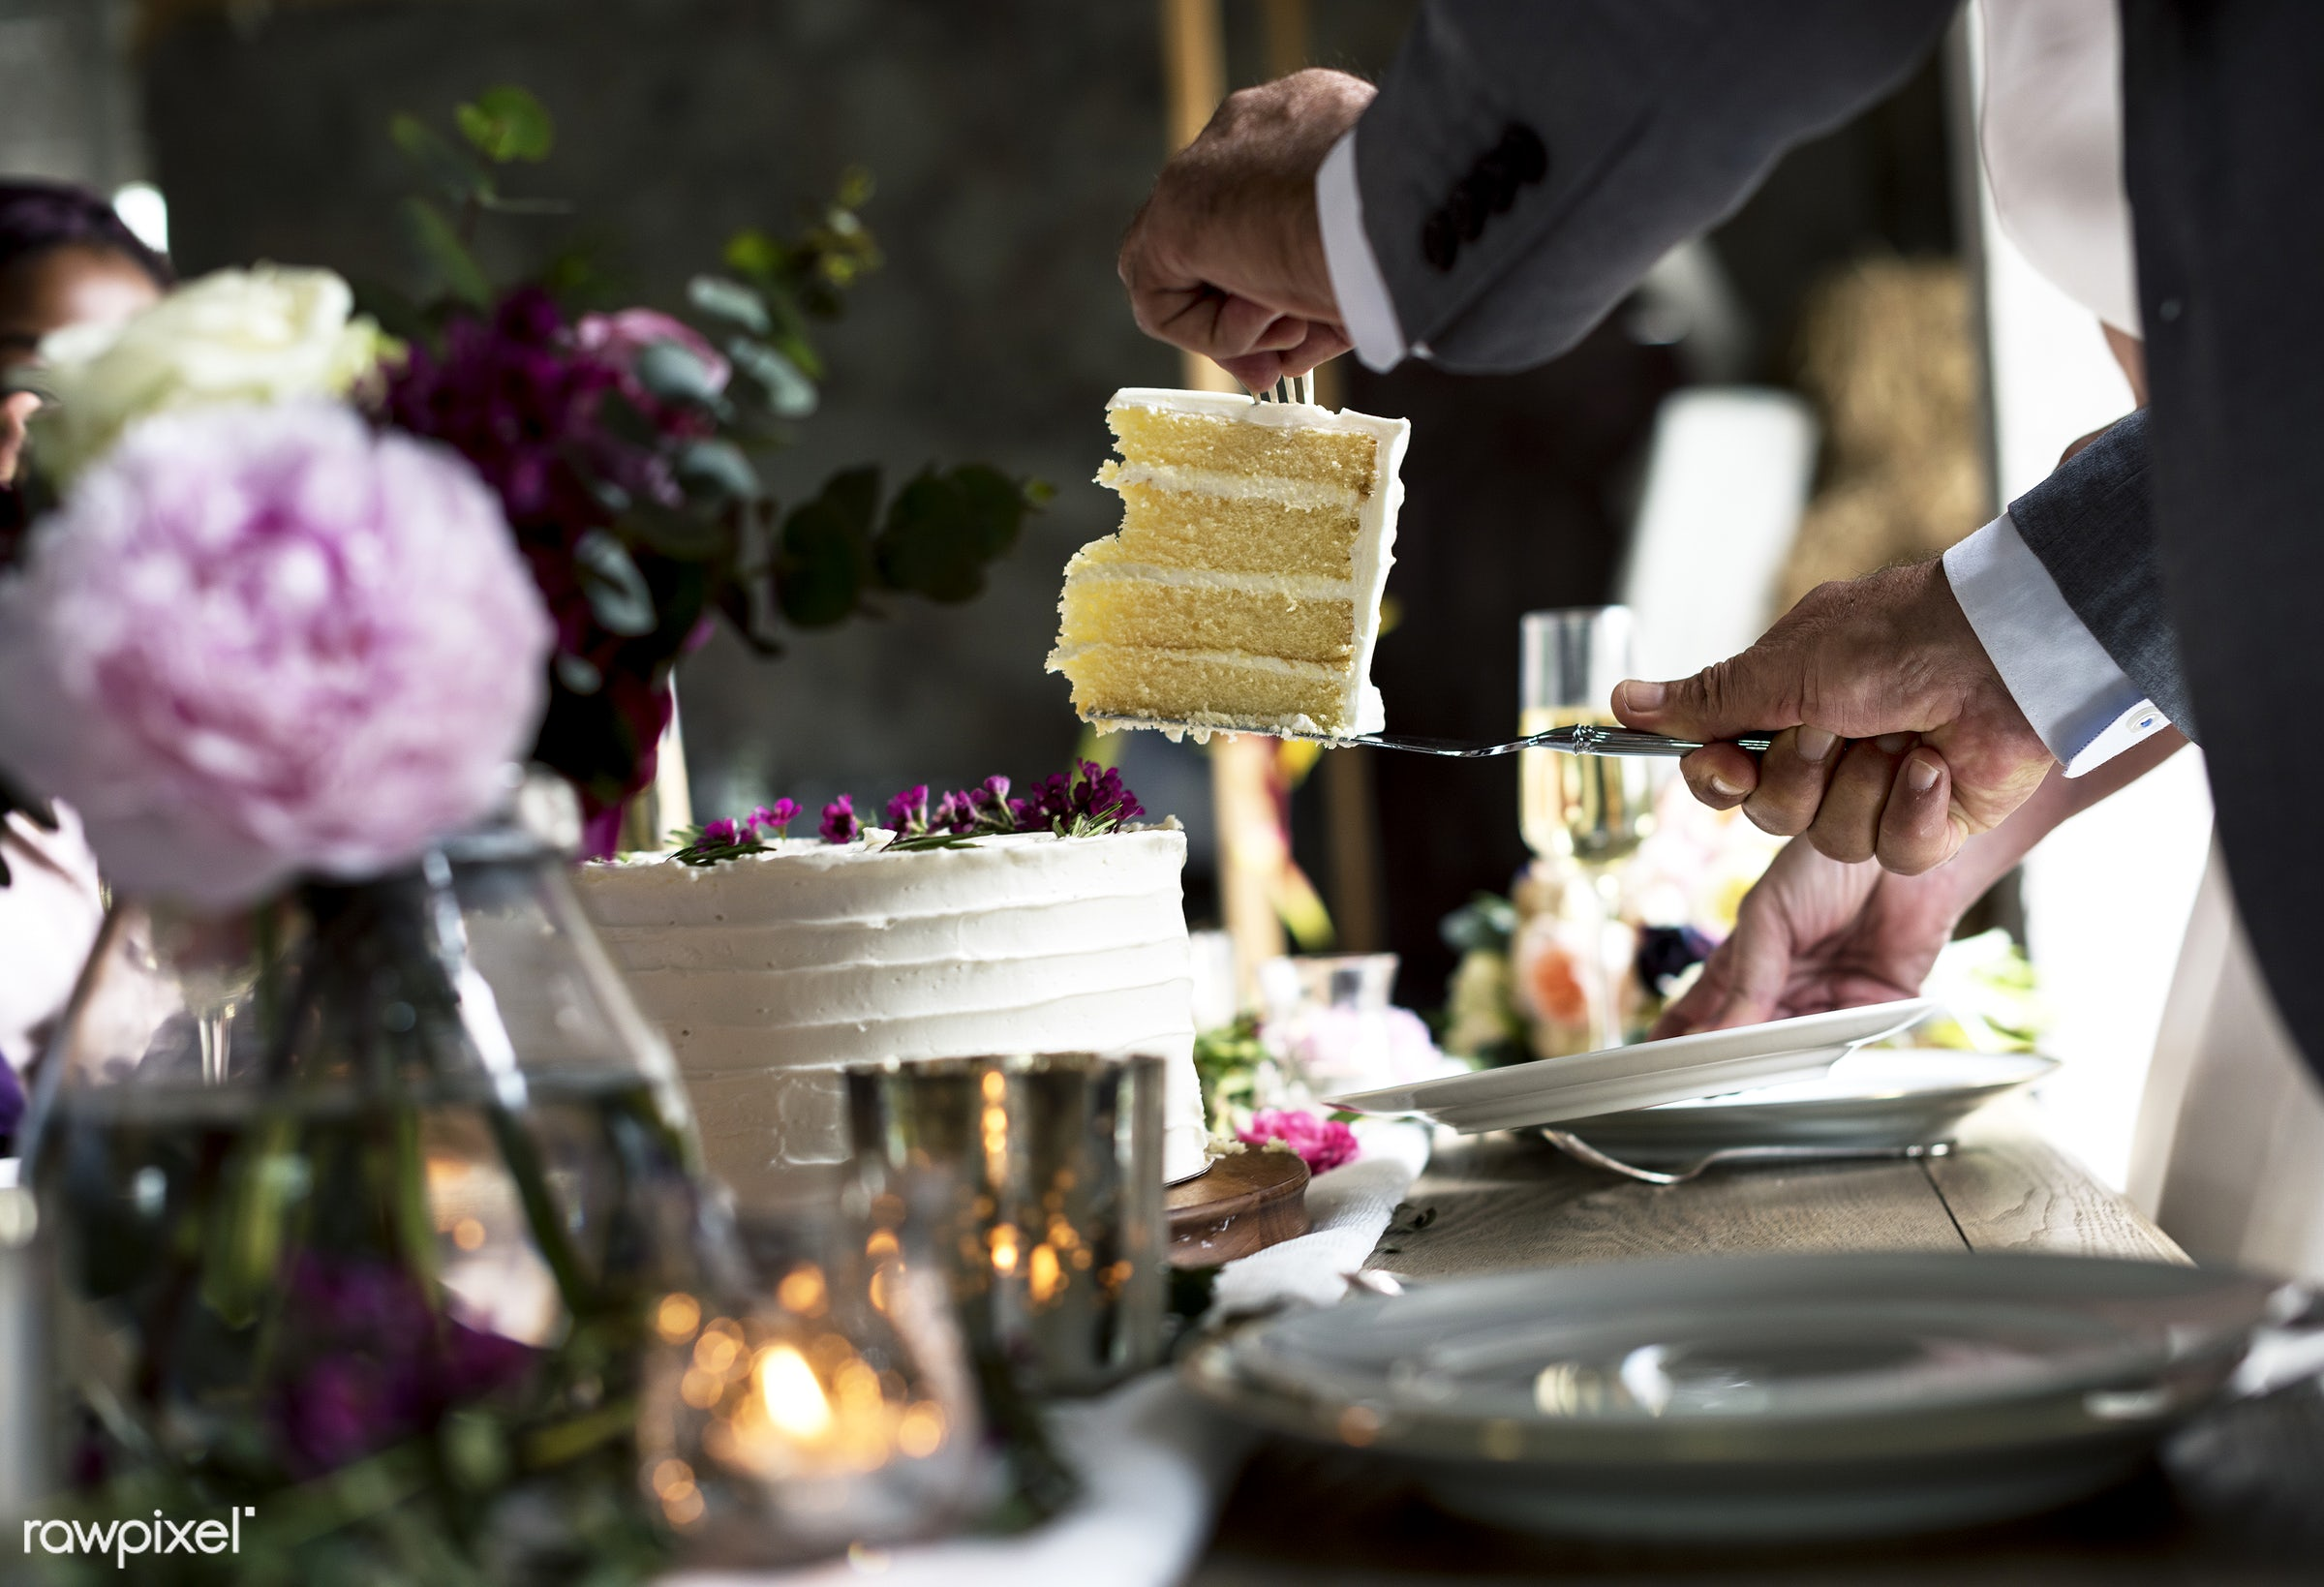 getting, occasion, party, sharing, bakery, hands, flowers, giving, closeup, piece, cake, table setting, ceremony, reception...